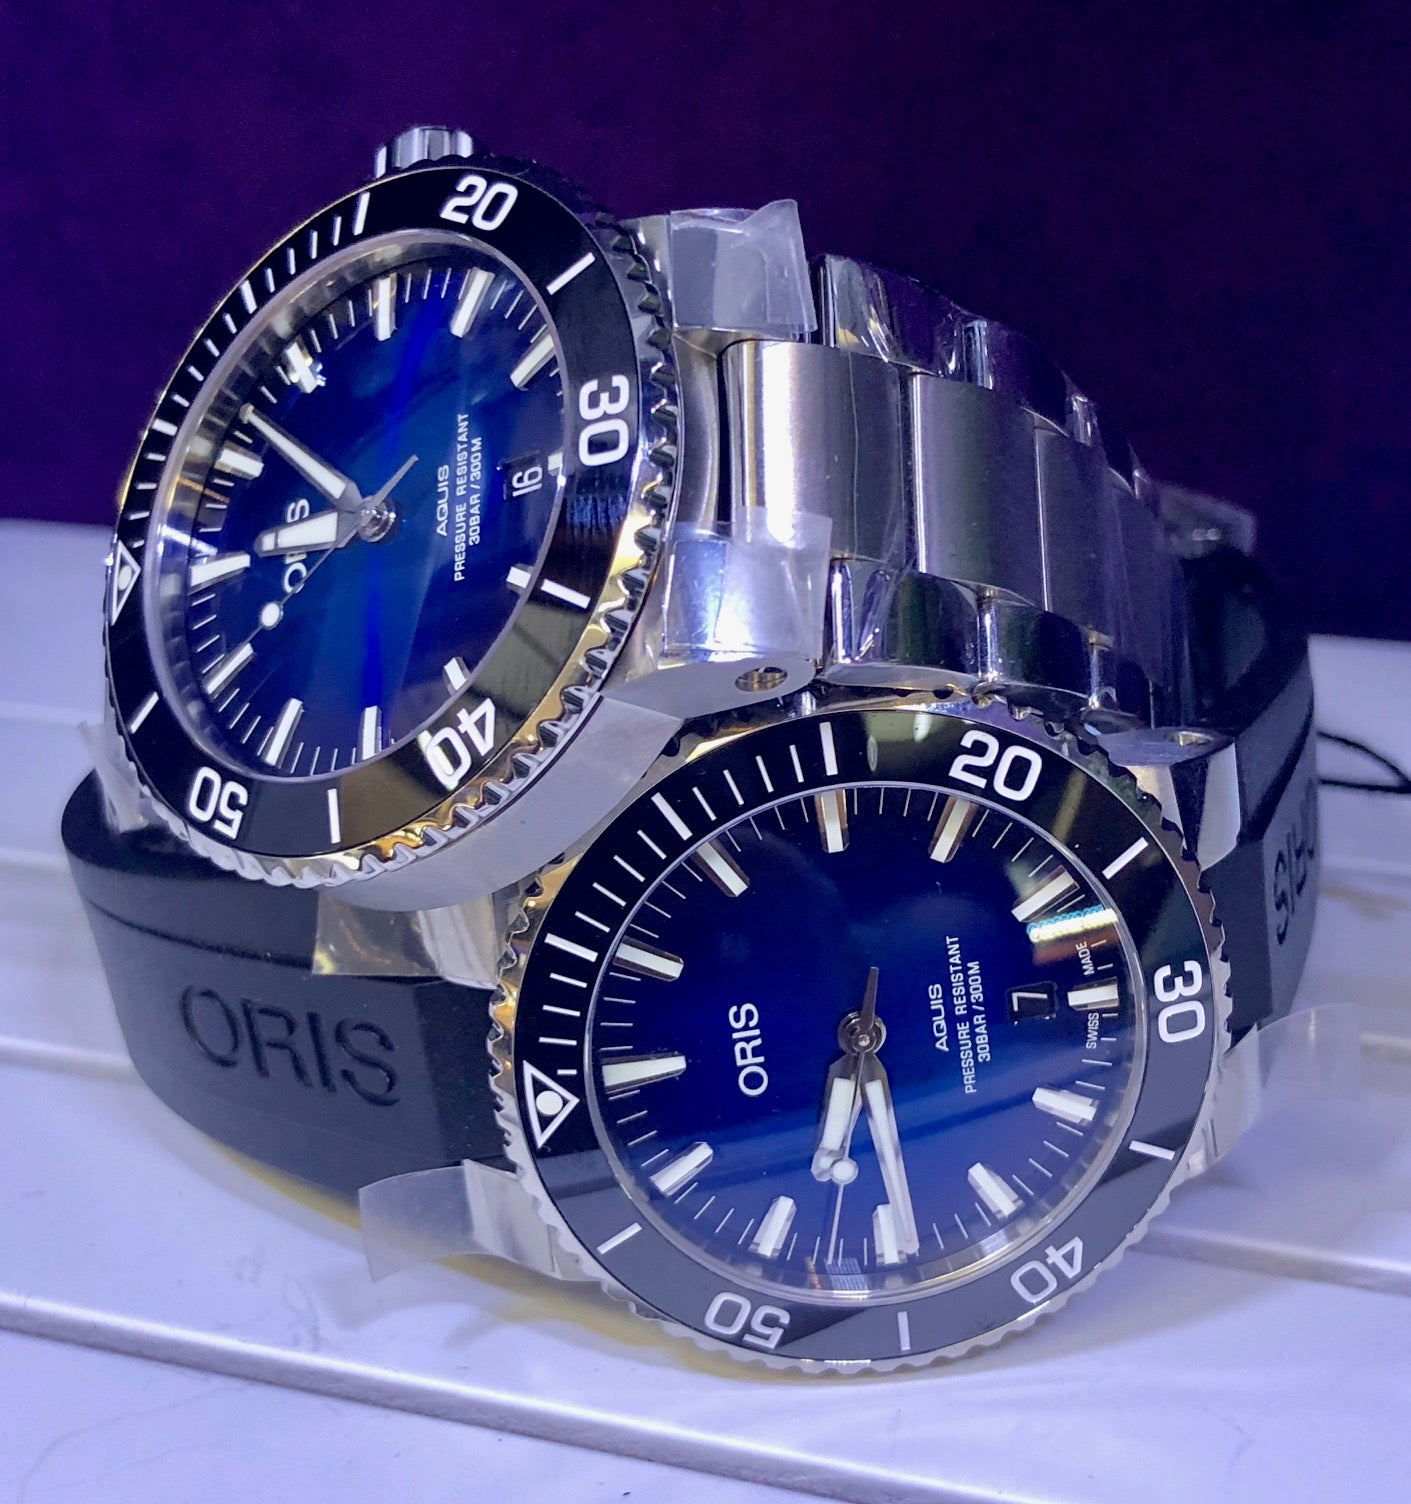 The Oris Clipperton Limited Edition Aquis Dive Watch First Look